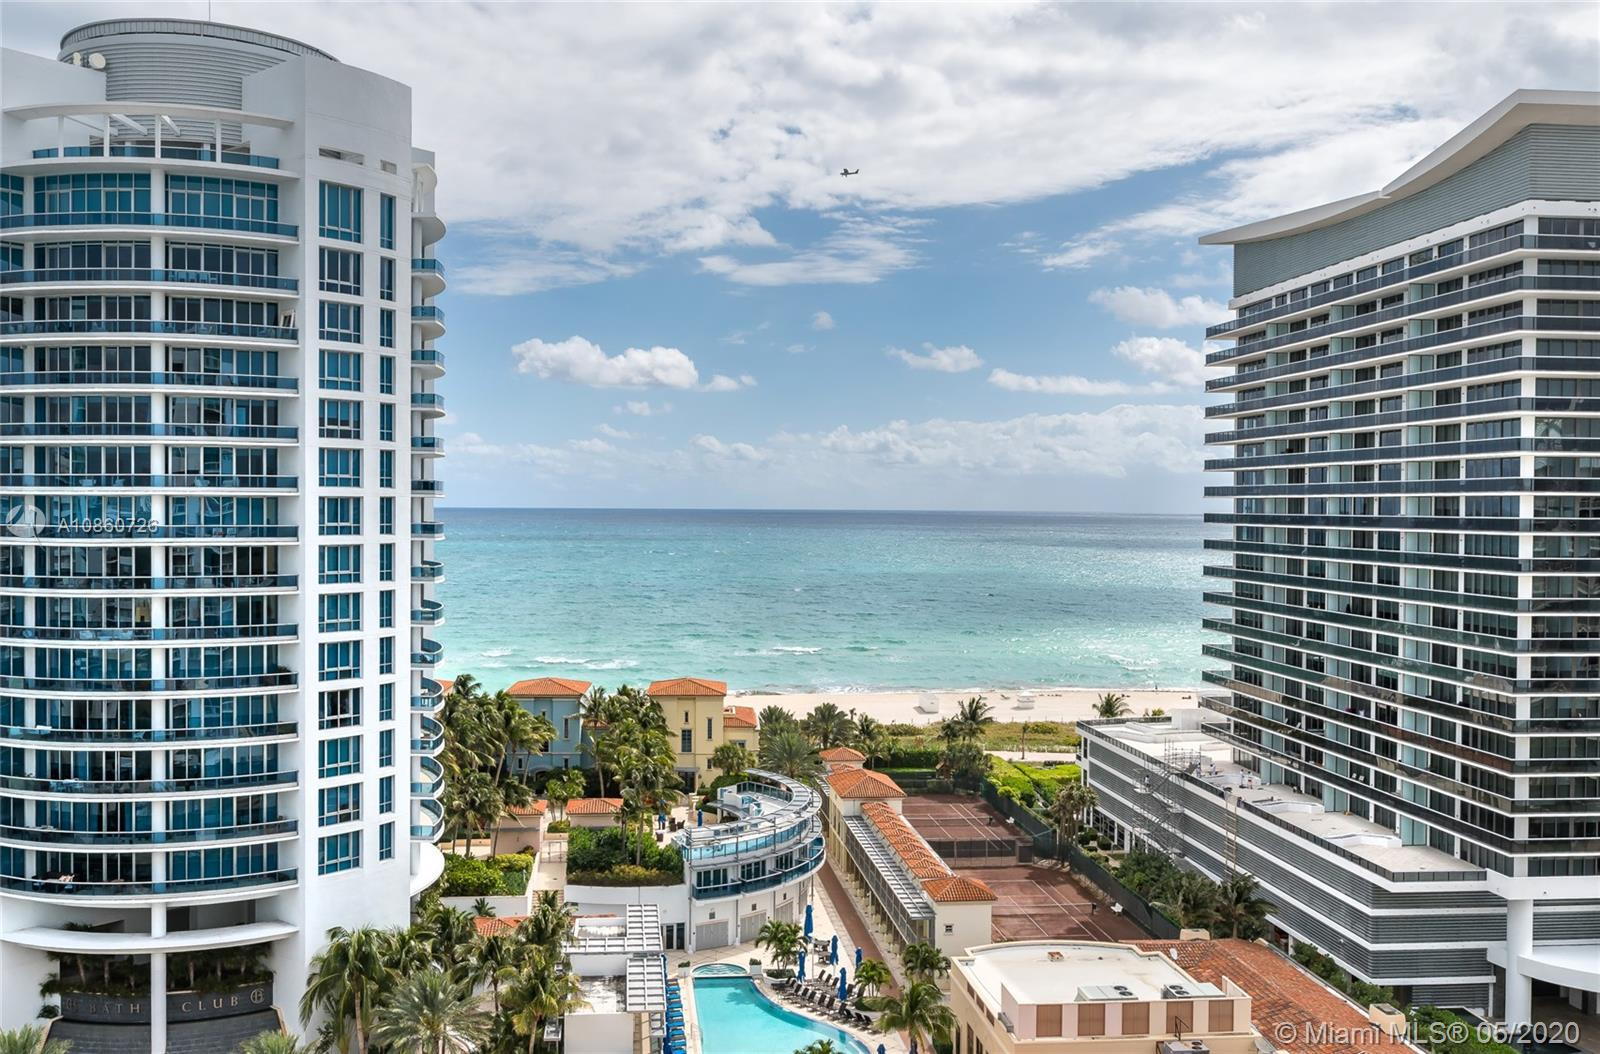 Direct Ocean view apartment from every single room! Completely remodel Apartment features 2 bedroom